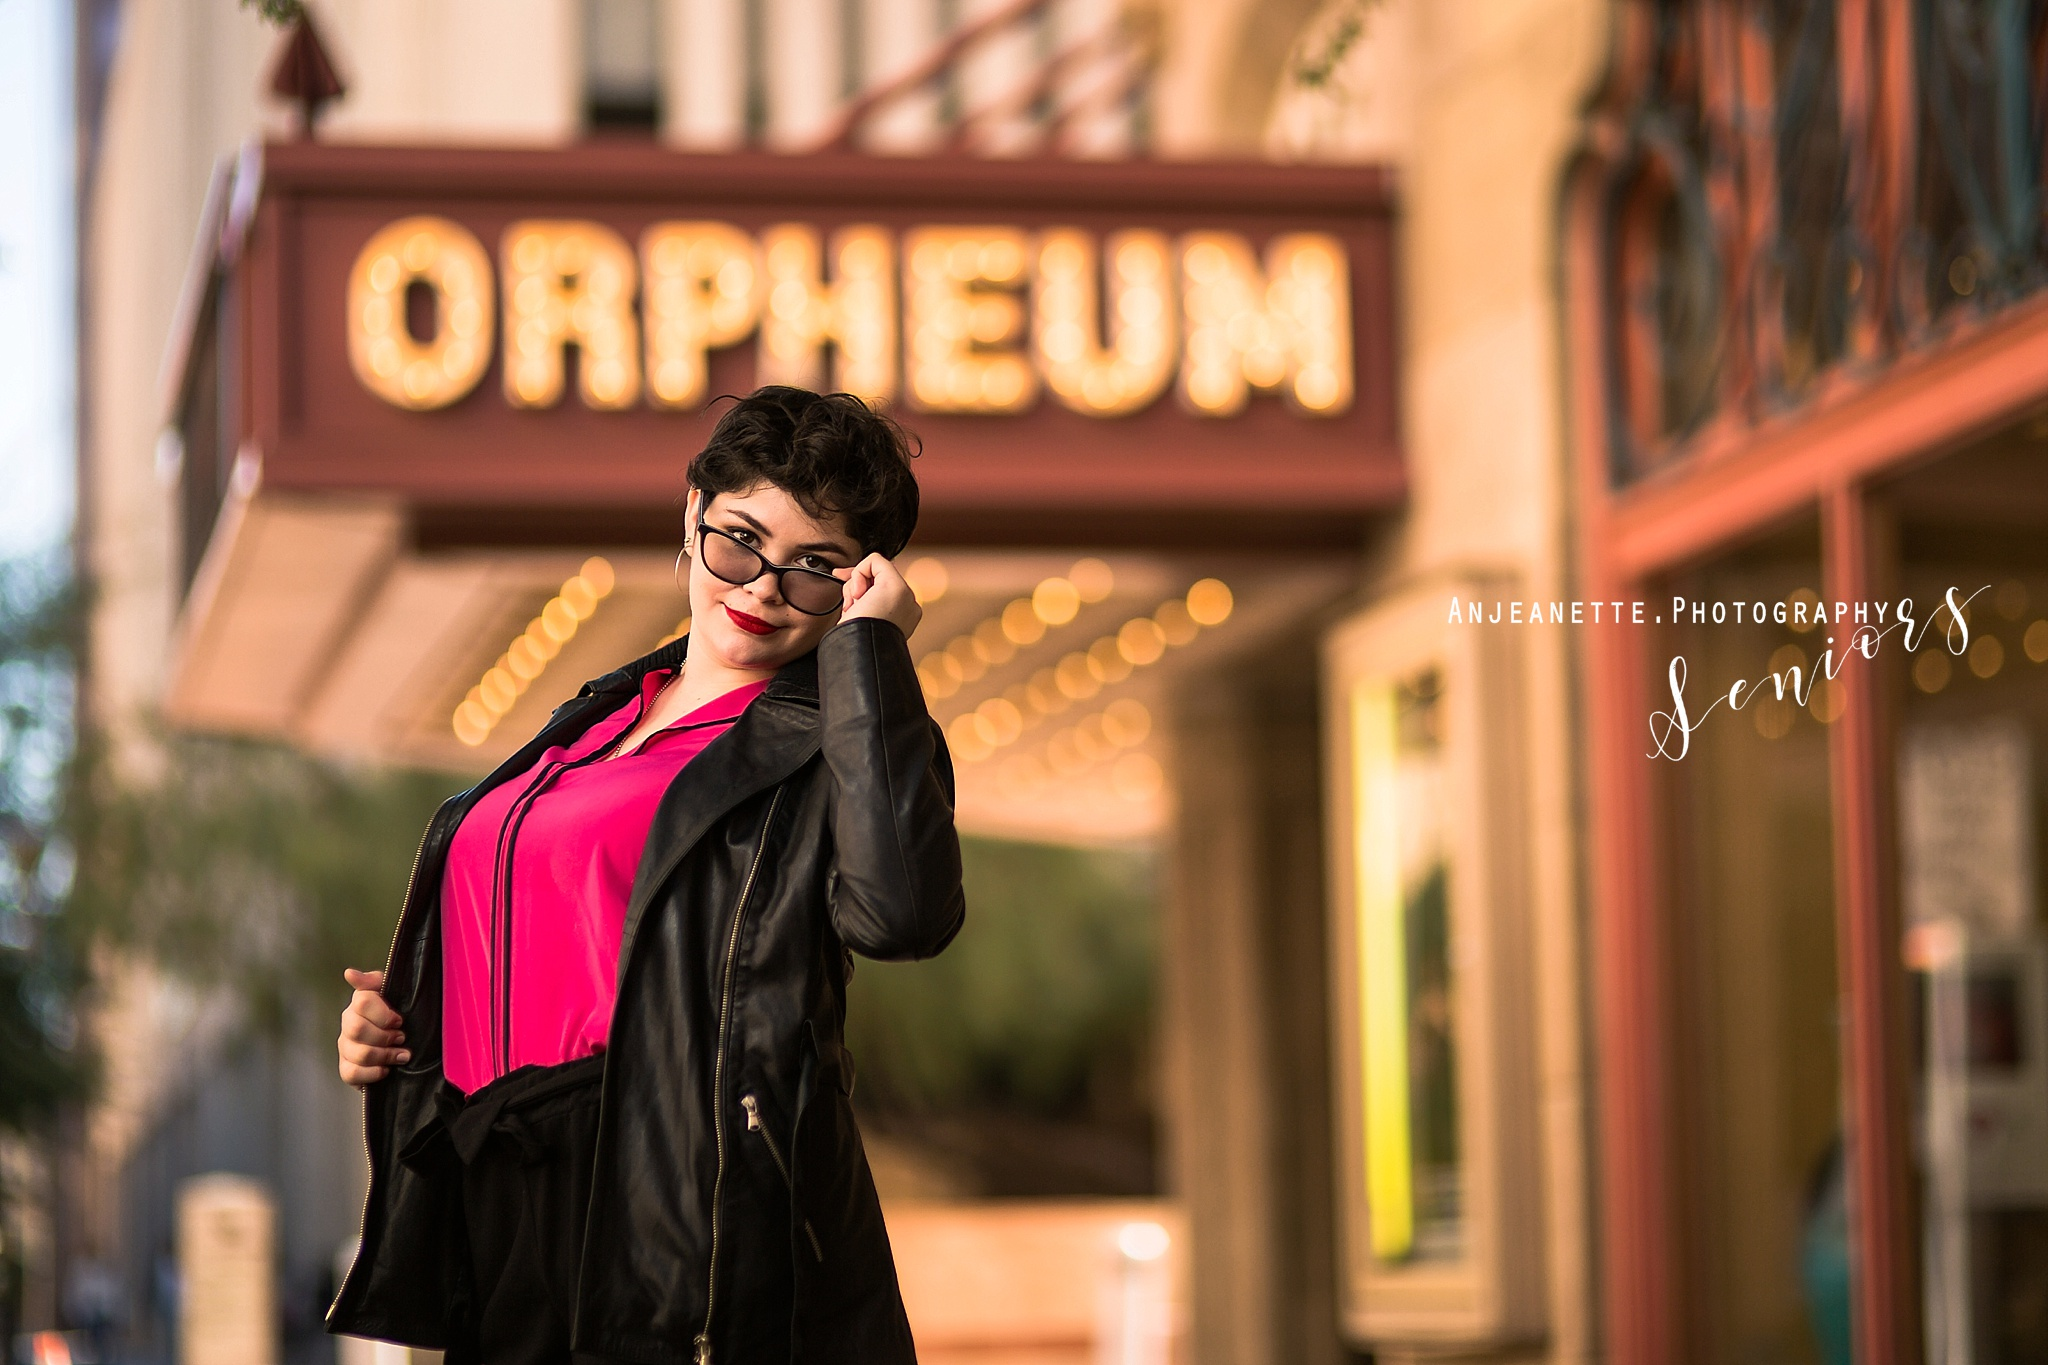 Places to take senior pictures Peoria Az senior grad pictures by Anthem scottsdale high school portraits, families, & Headshot photographer Anjeanette Photography Phx Arizona